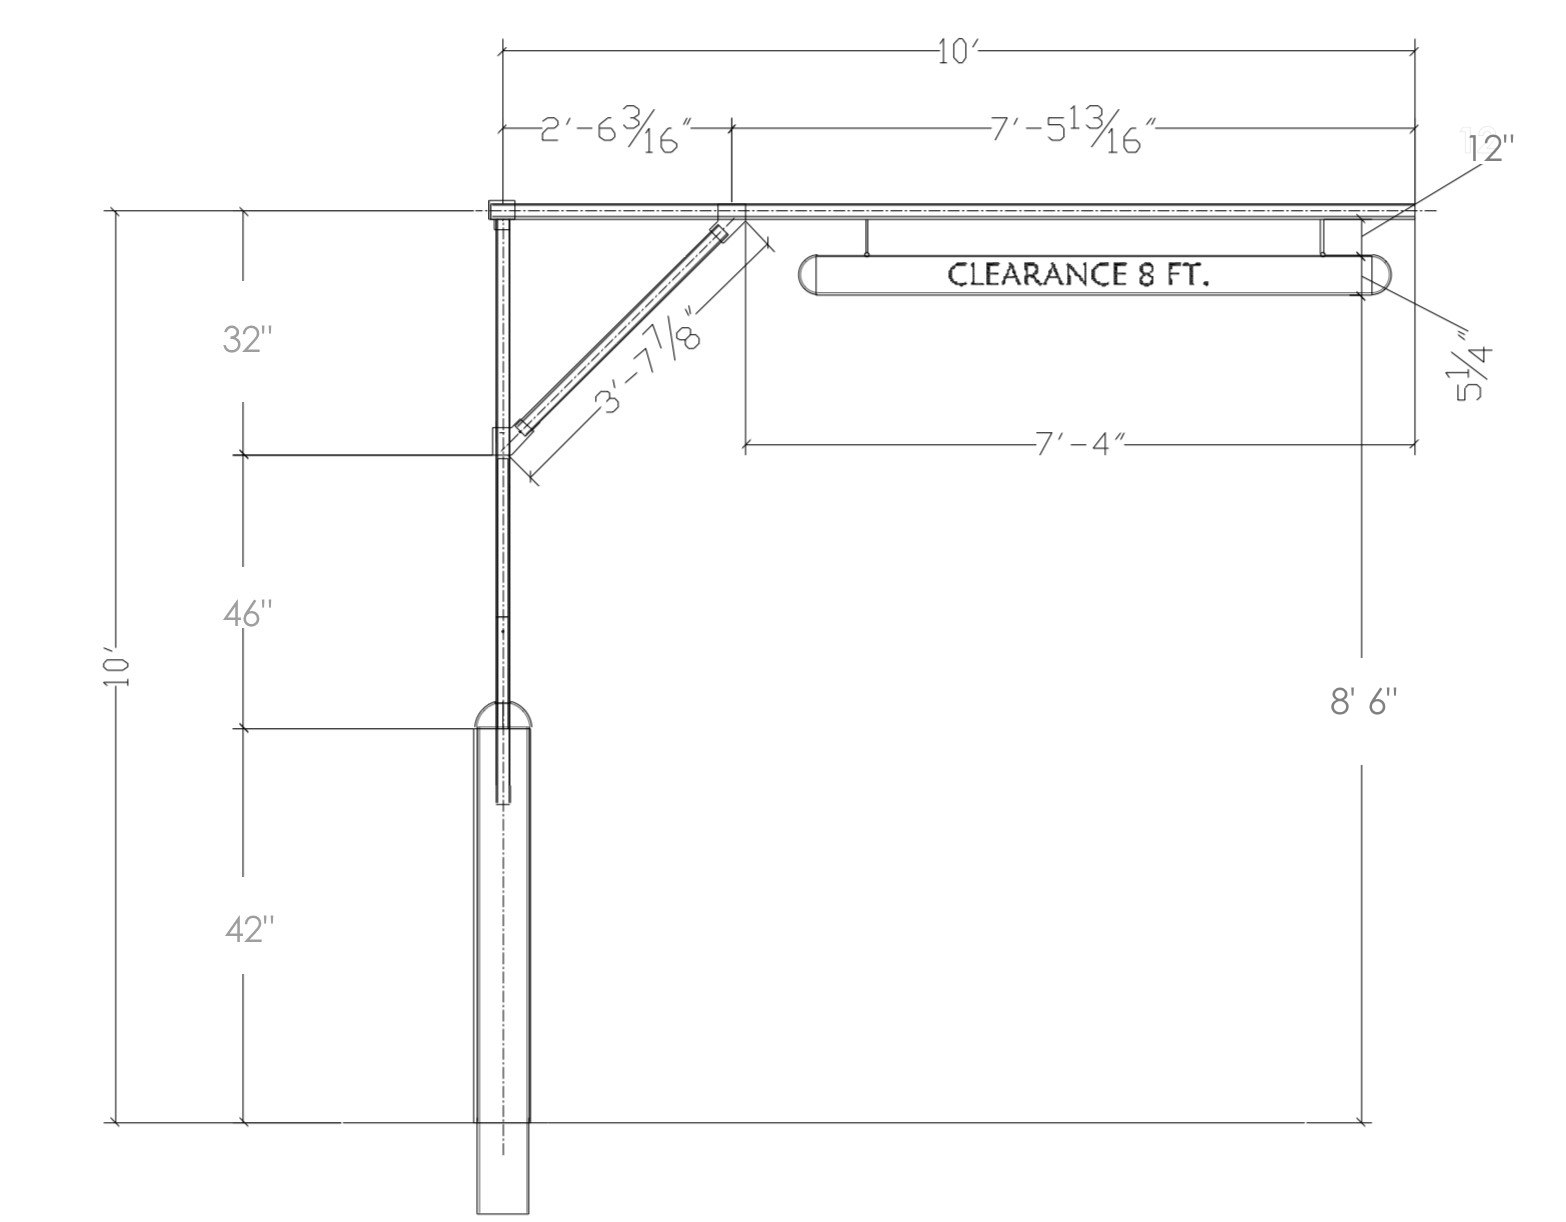 Free Standing Clearance Bar Dimensions